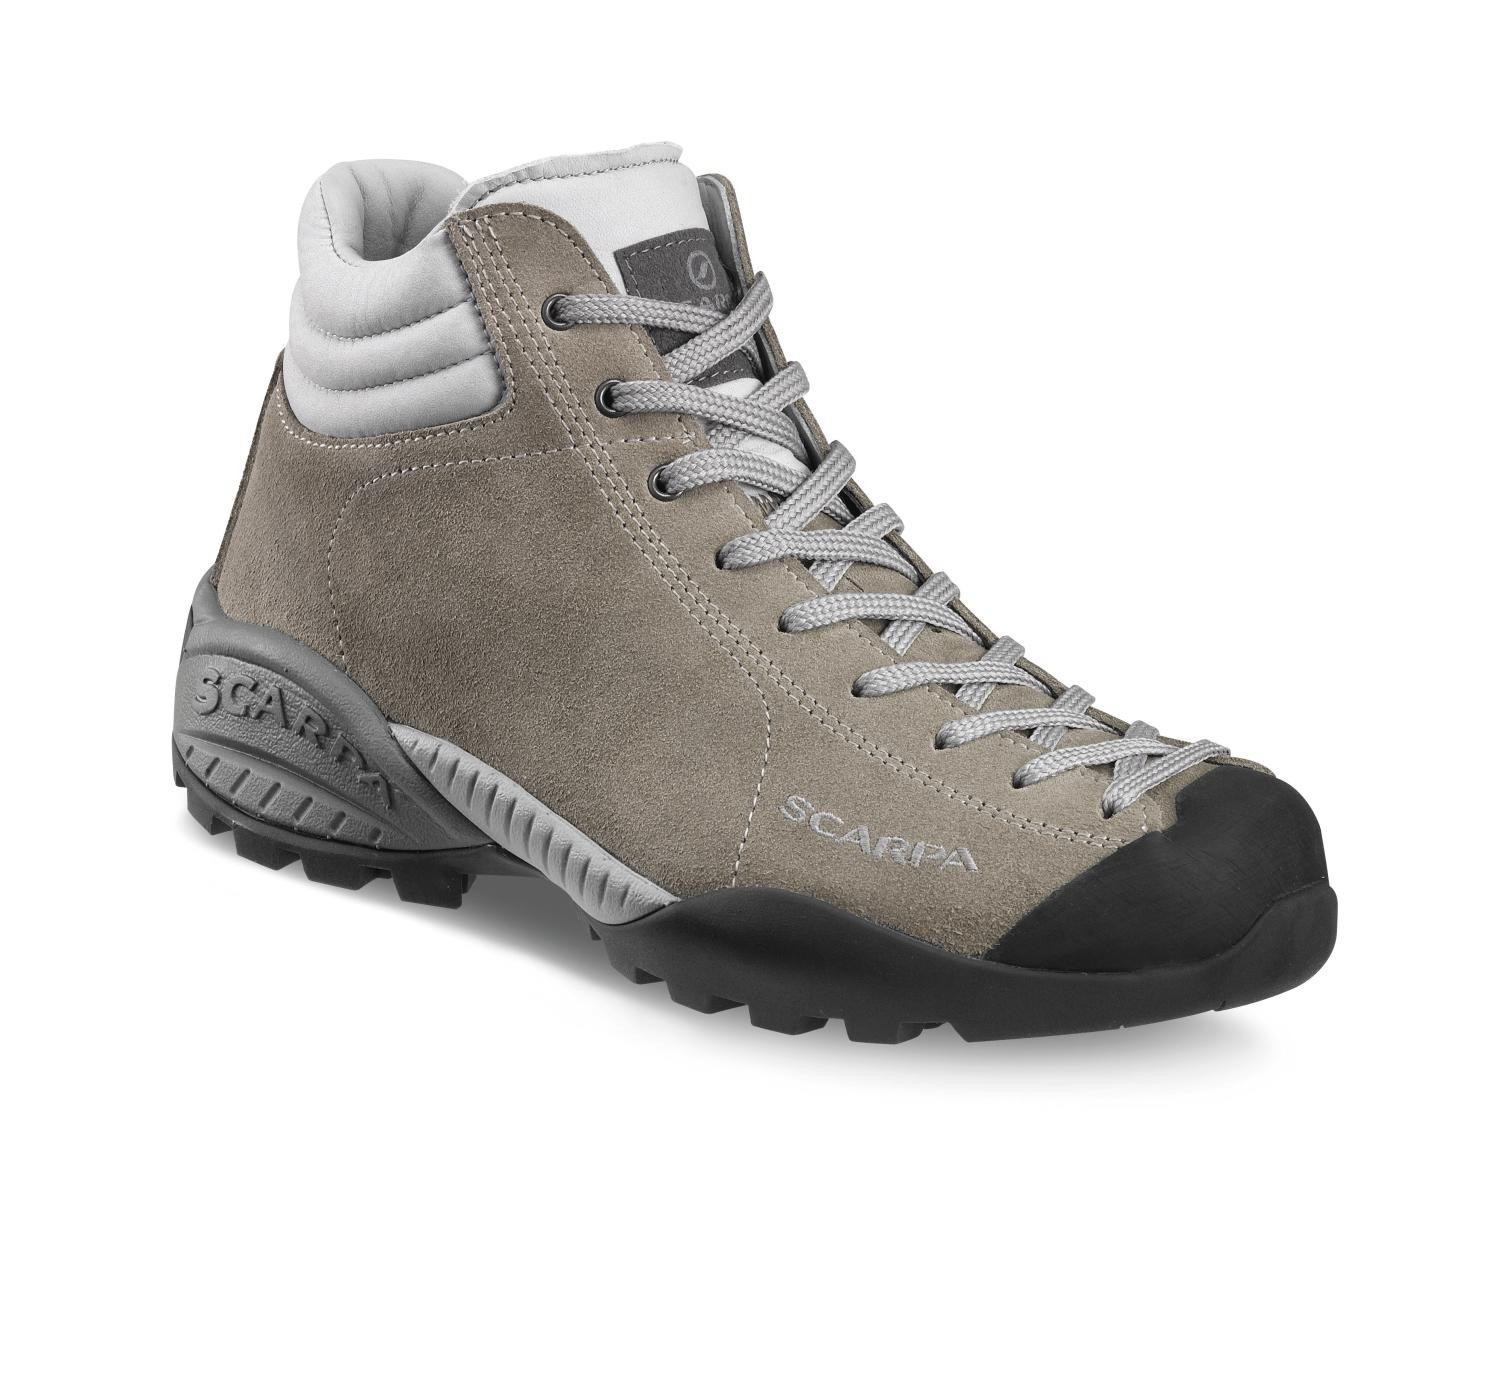 Scarpa - Mojito Plus GTX Stone - Approach Shoes - 38